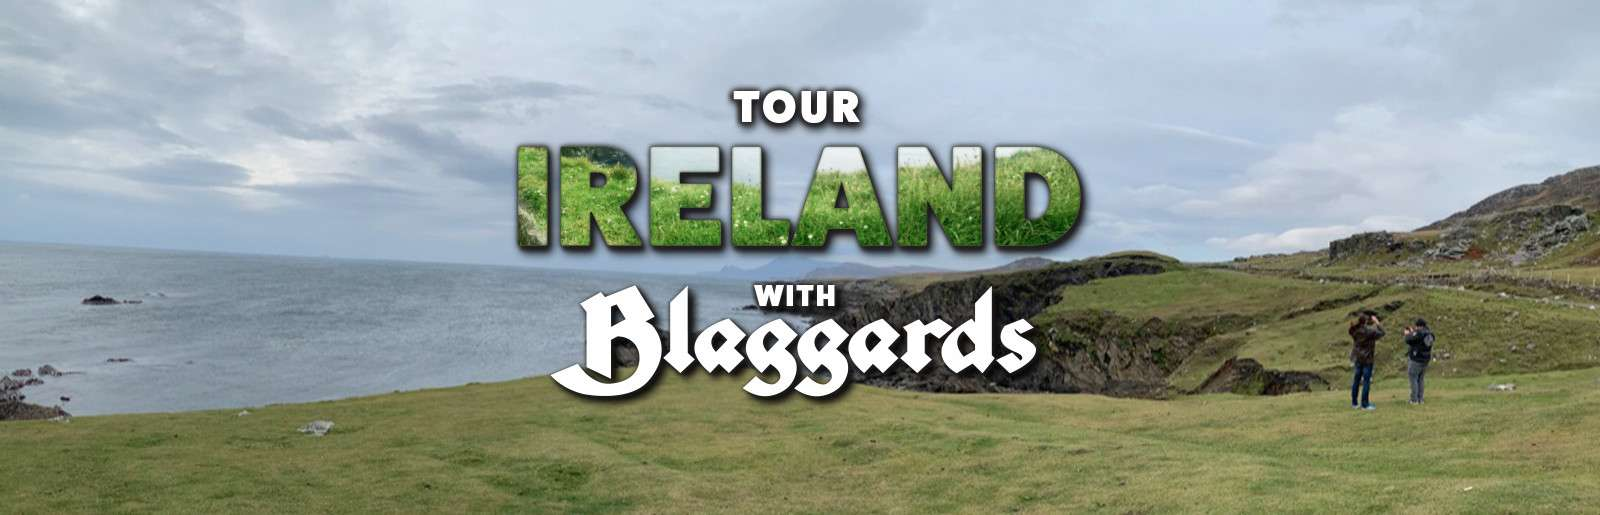 Tour IRELAND with Blaggards